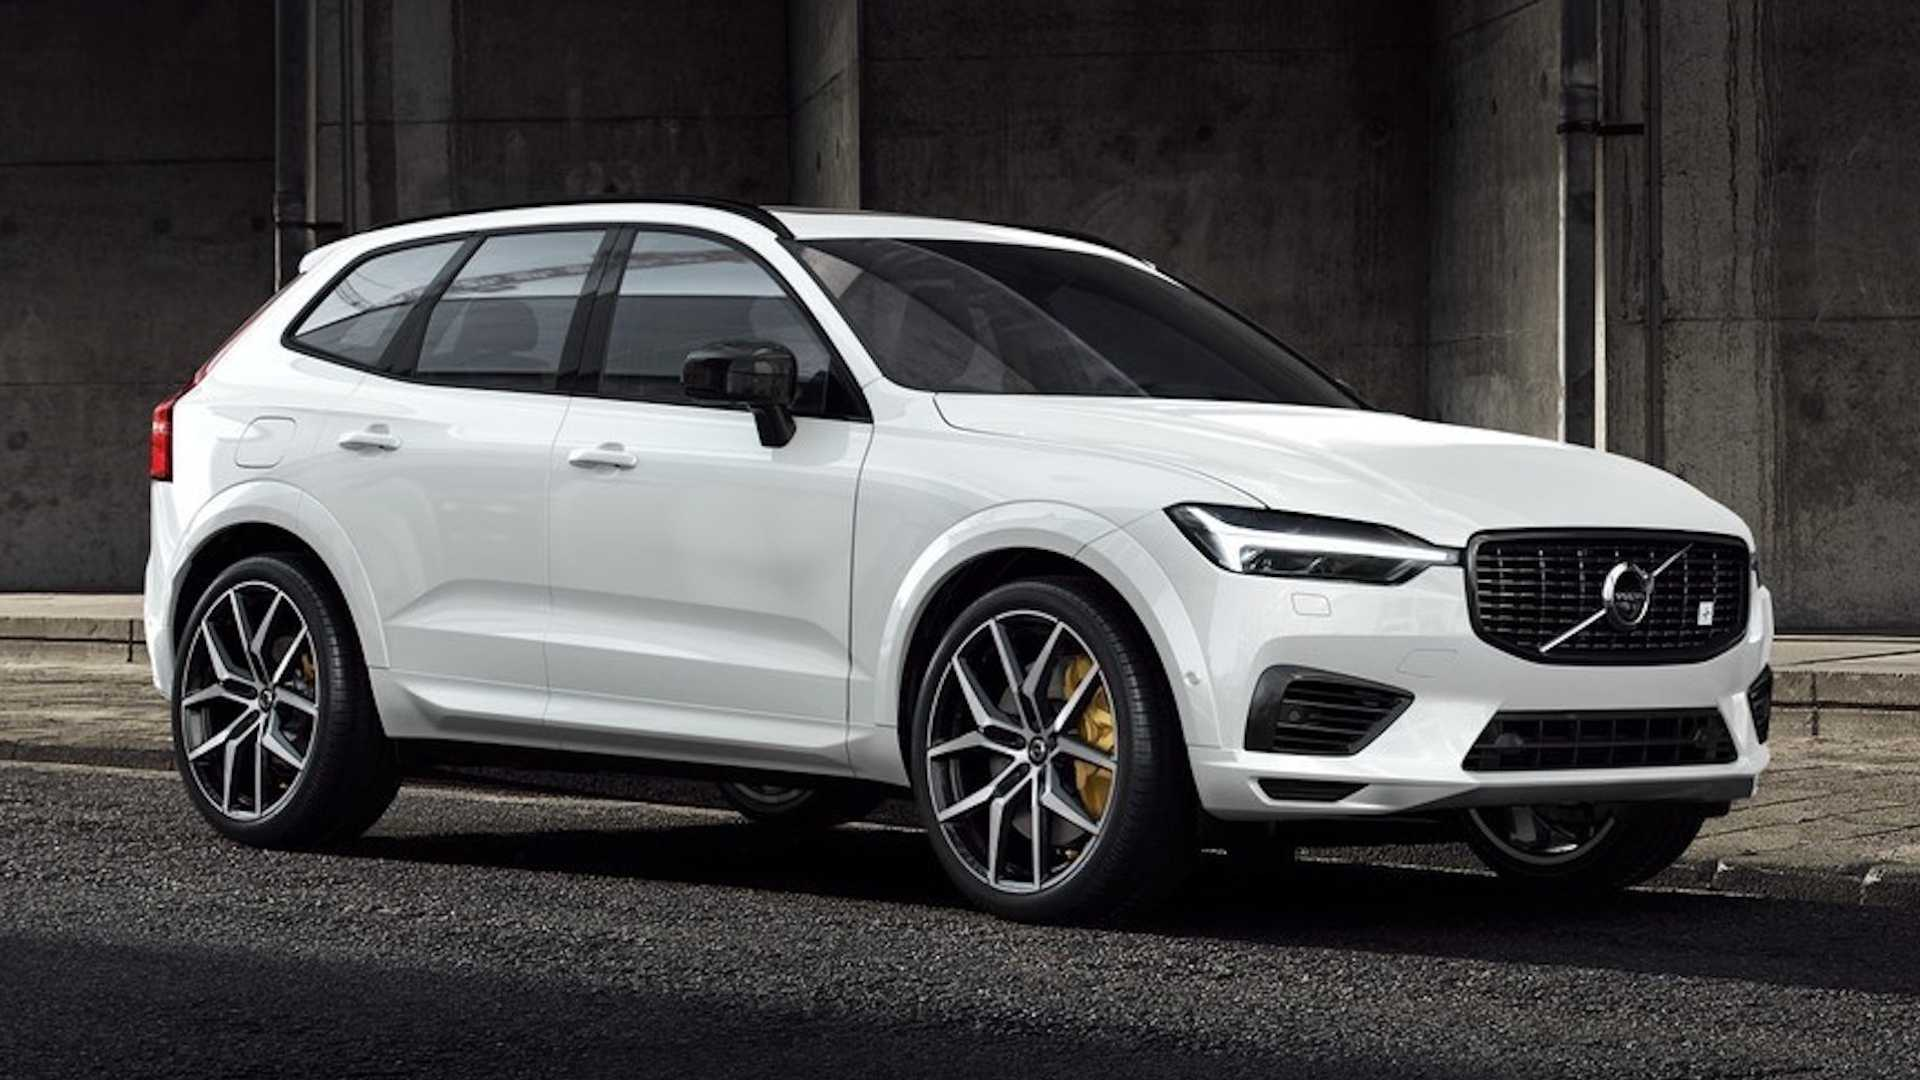 Volvo Xc60 V60 Polestar Engineered